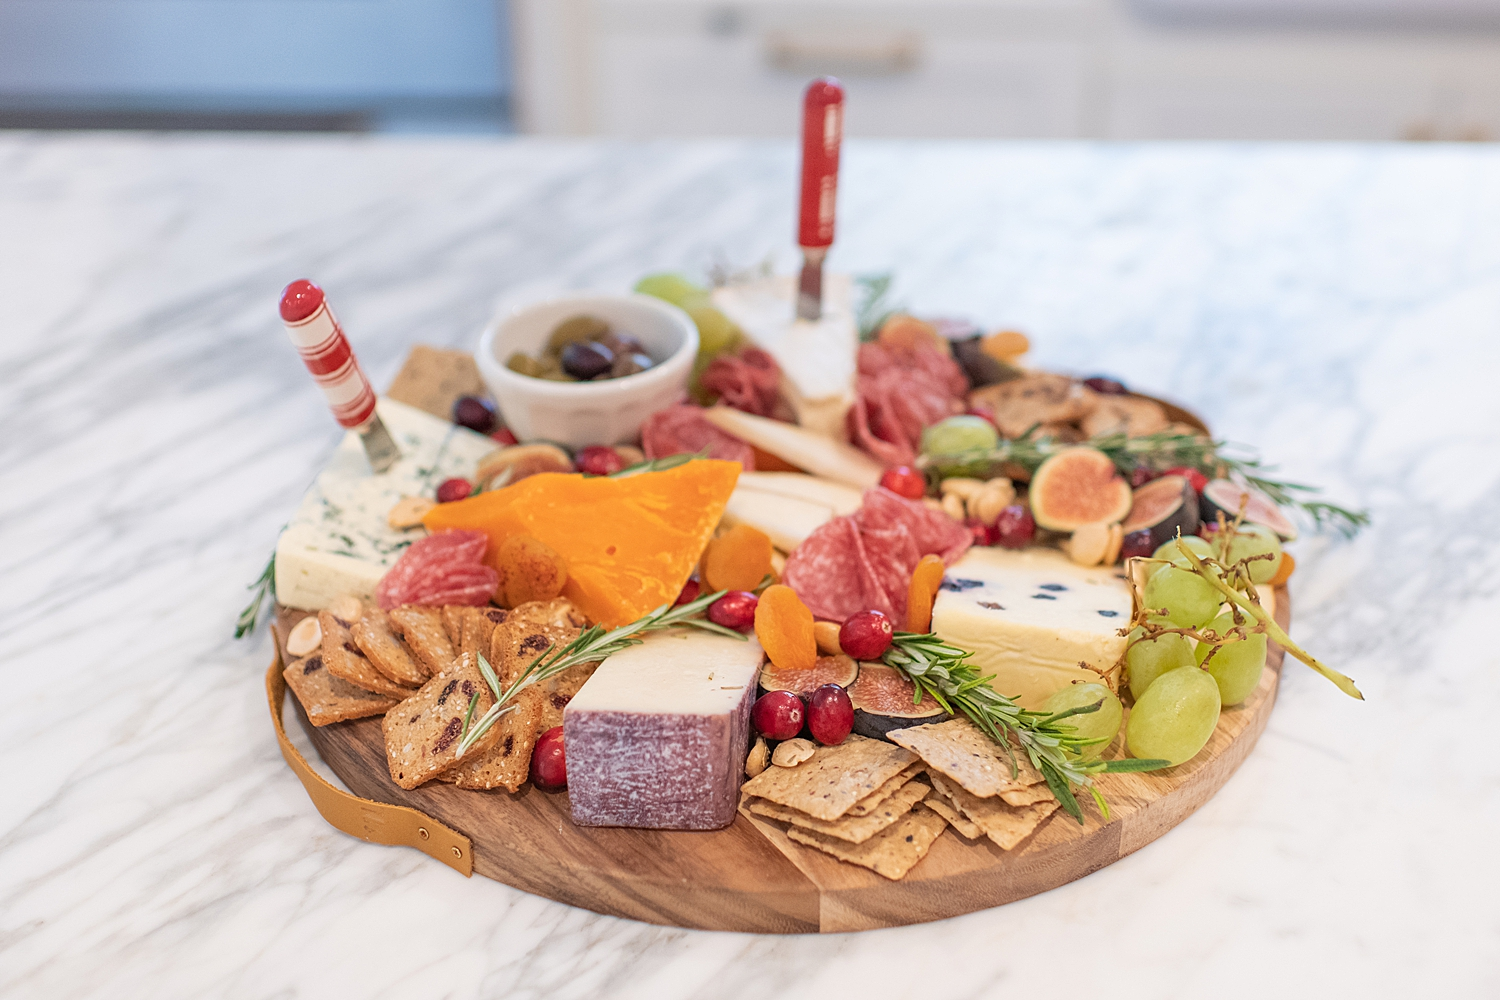 Top Houston life and style blogger, Fancy Ashley, features her tips to prepare the perfect Charcuterie Tray for the Holidays: image of a festive charcuterie tray